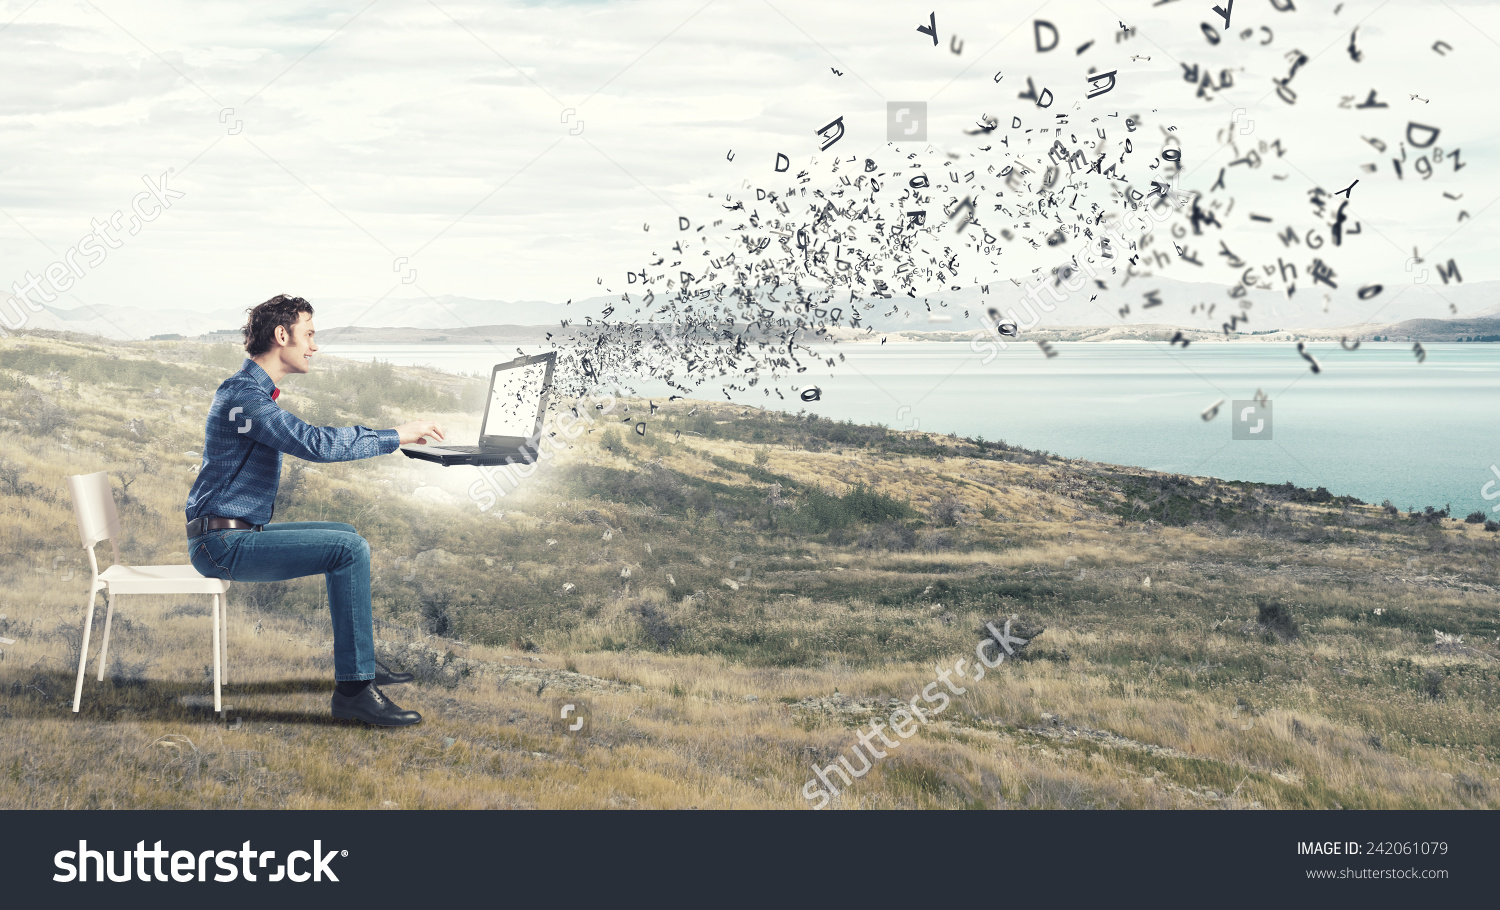 stock-photo-young-man-sitting-in-chair-and-using-laptop-242061079